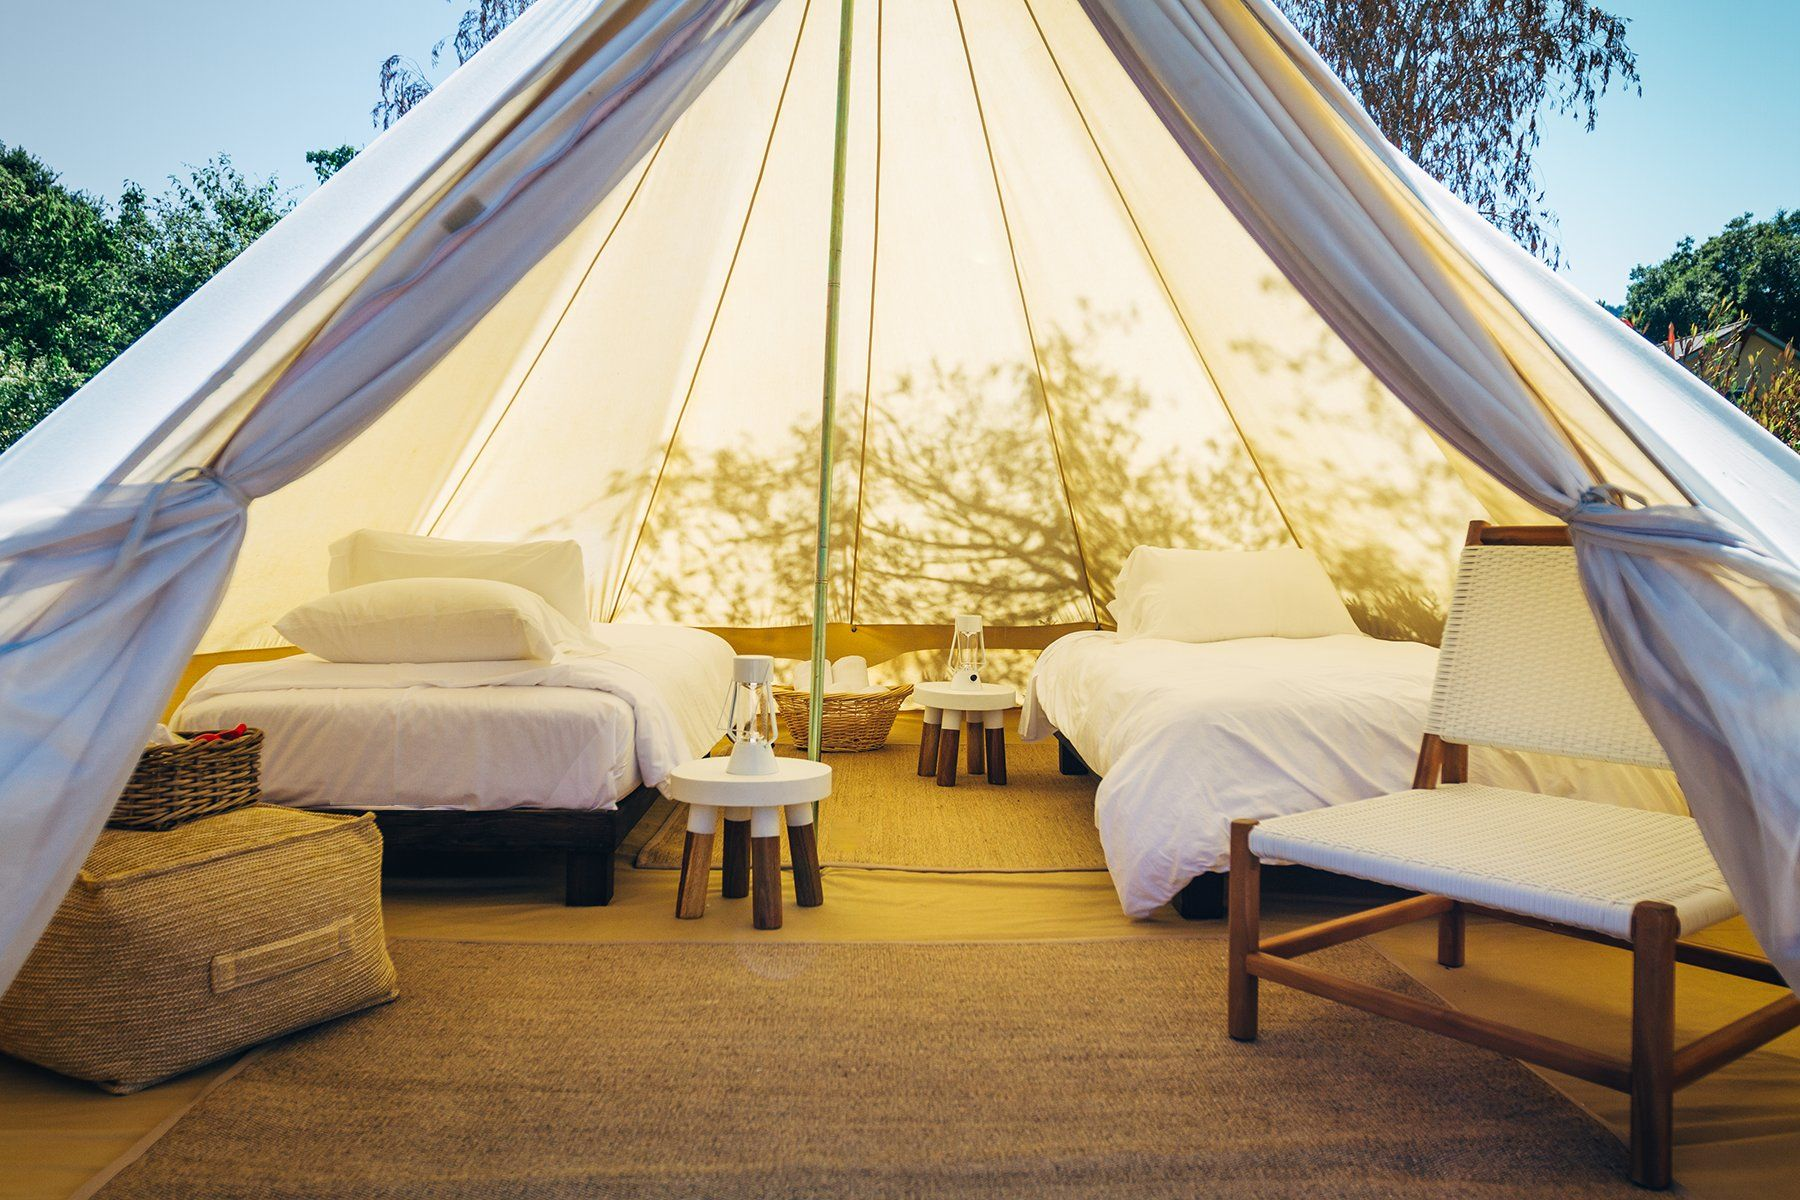 Deluxe bell tent yurt rentals with pool at country